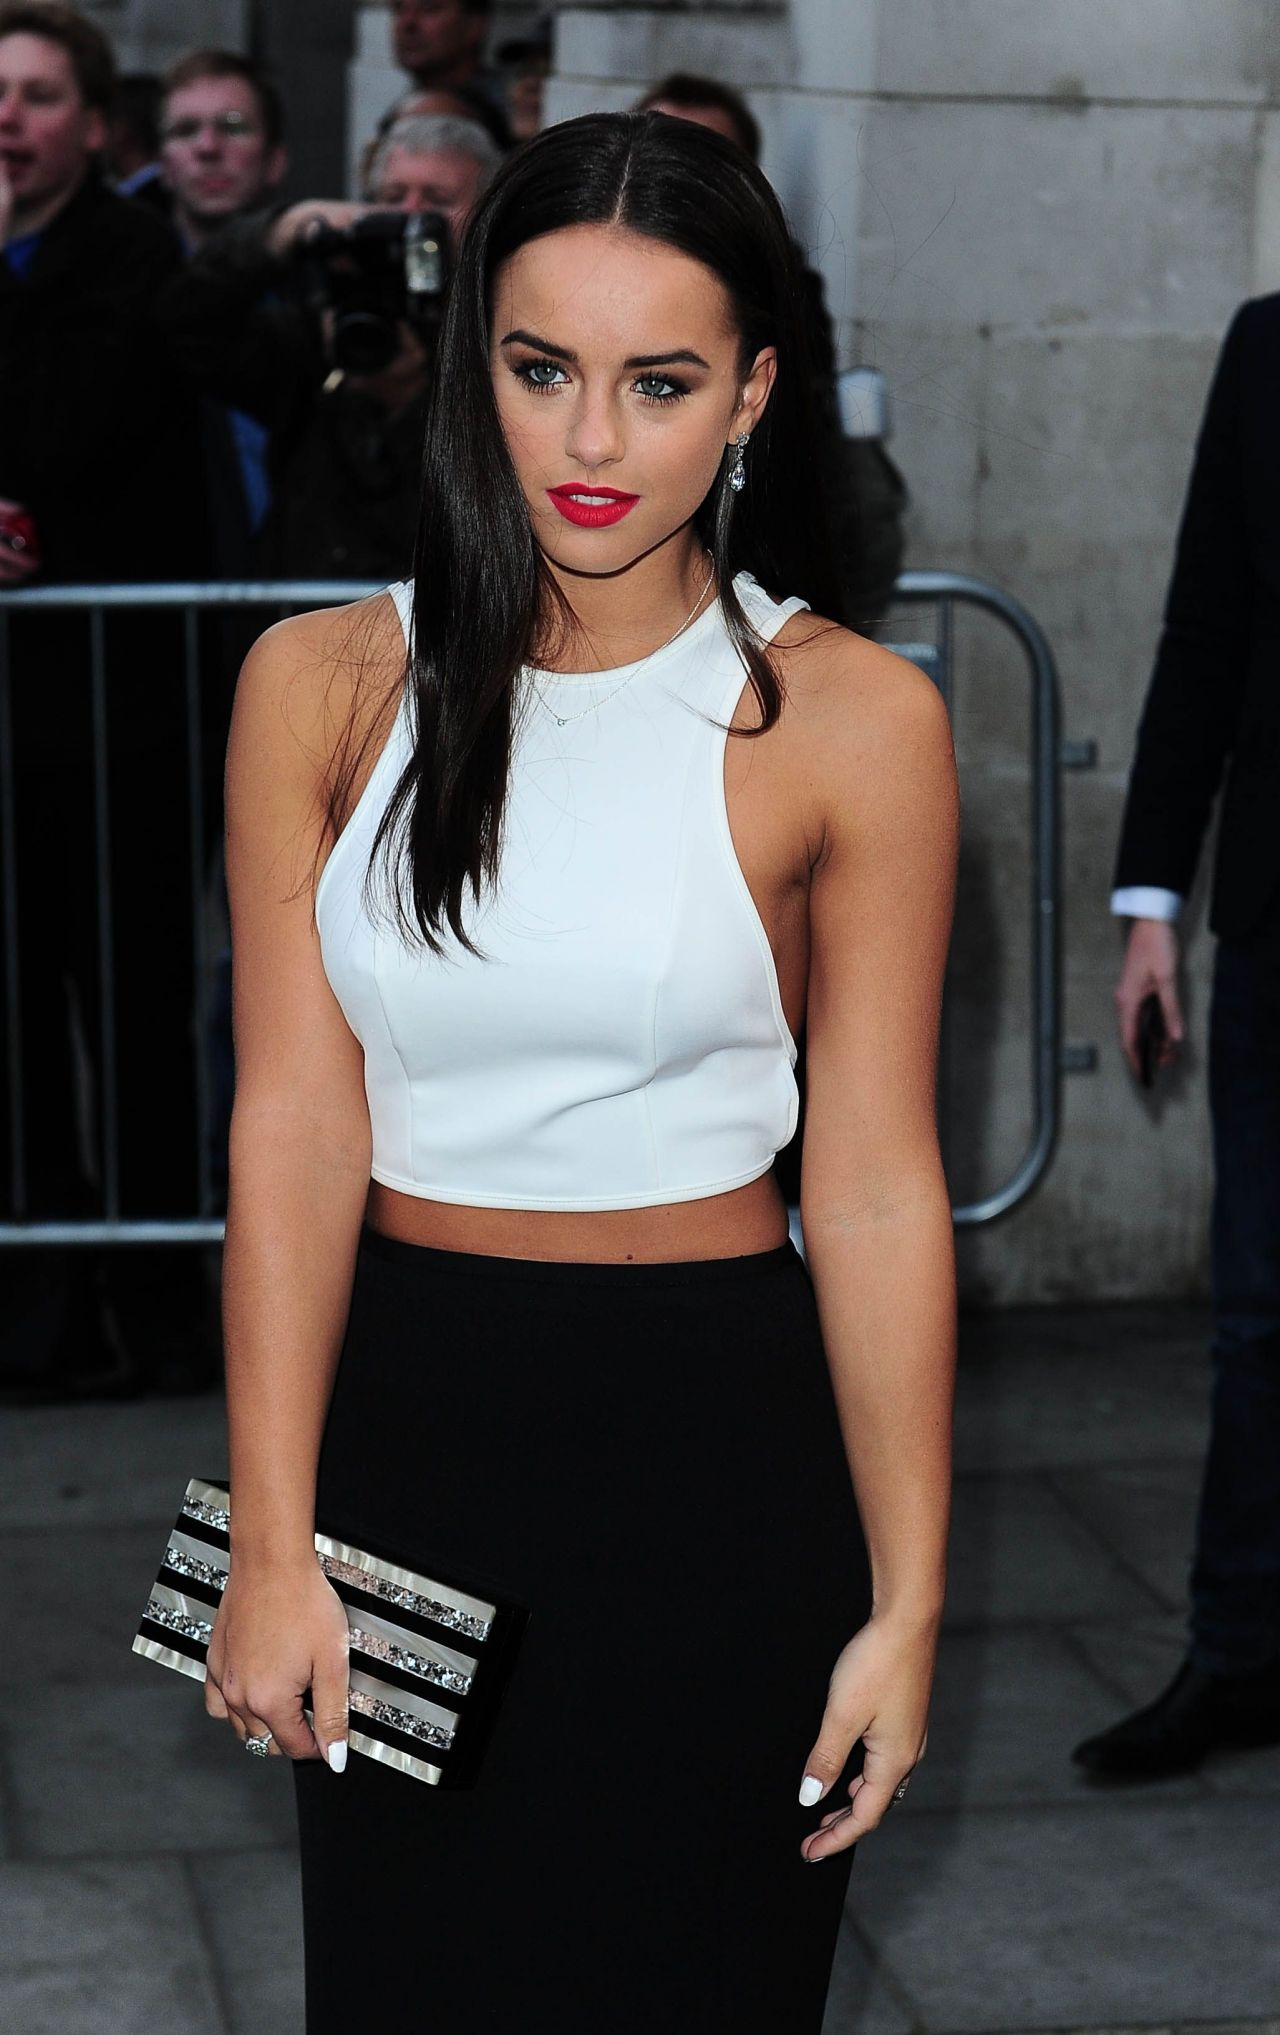 Georgia May Foote Pride Of Britain Awards 2015 In London